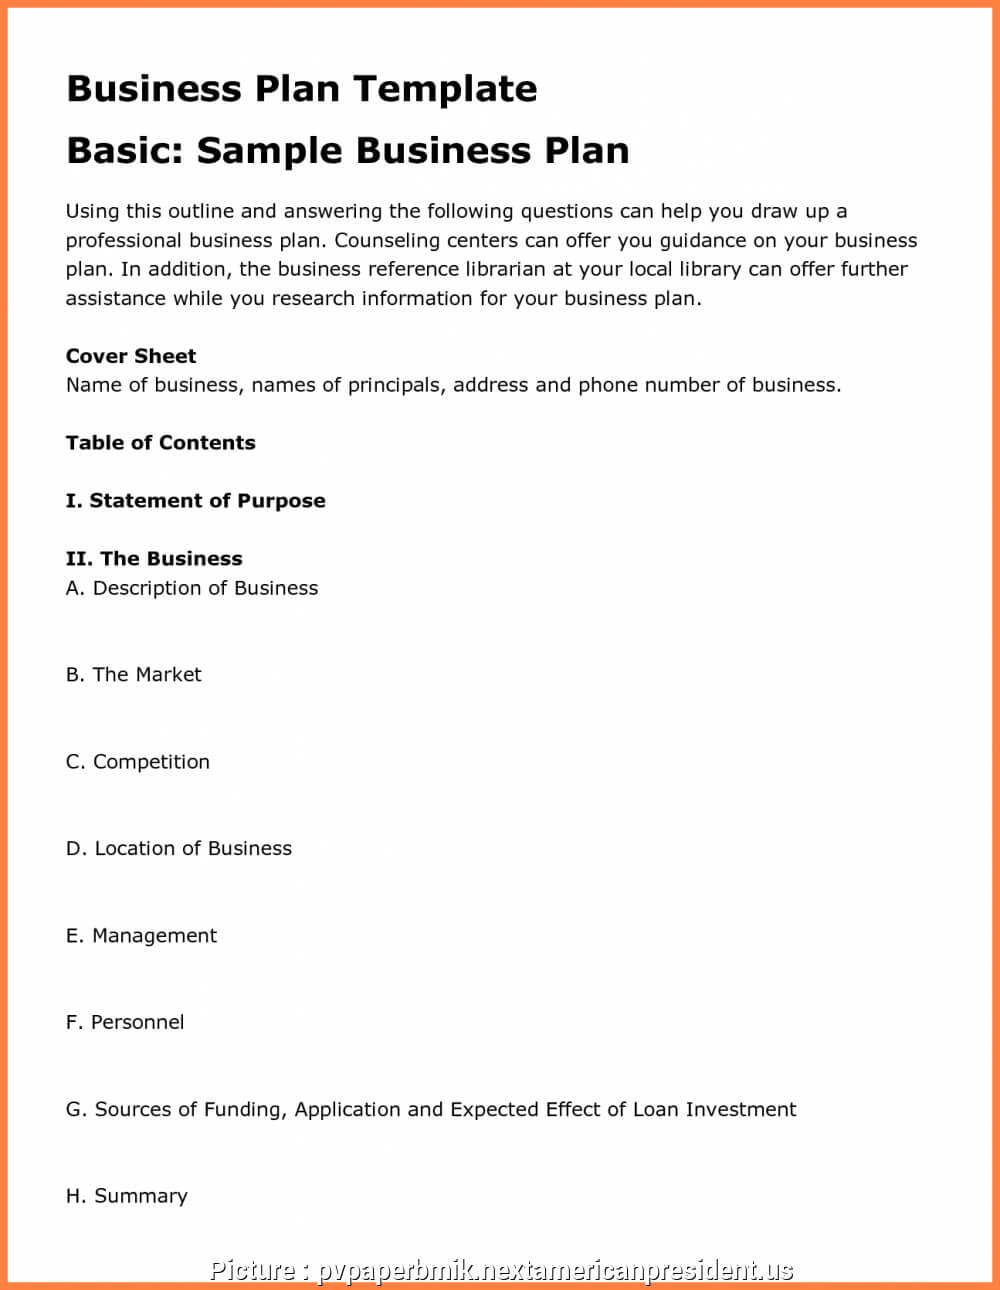 Bookstore Business Plan Sample Free Template In India Ppt In Bookstore Business Plan Template